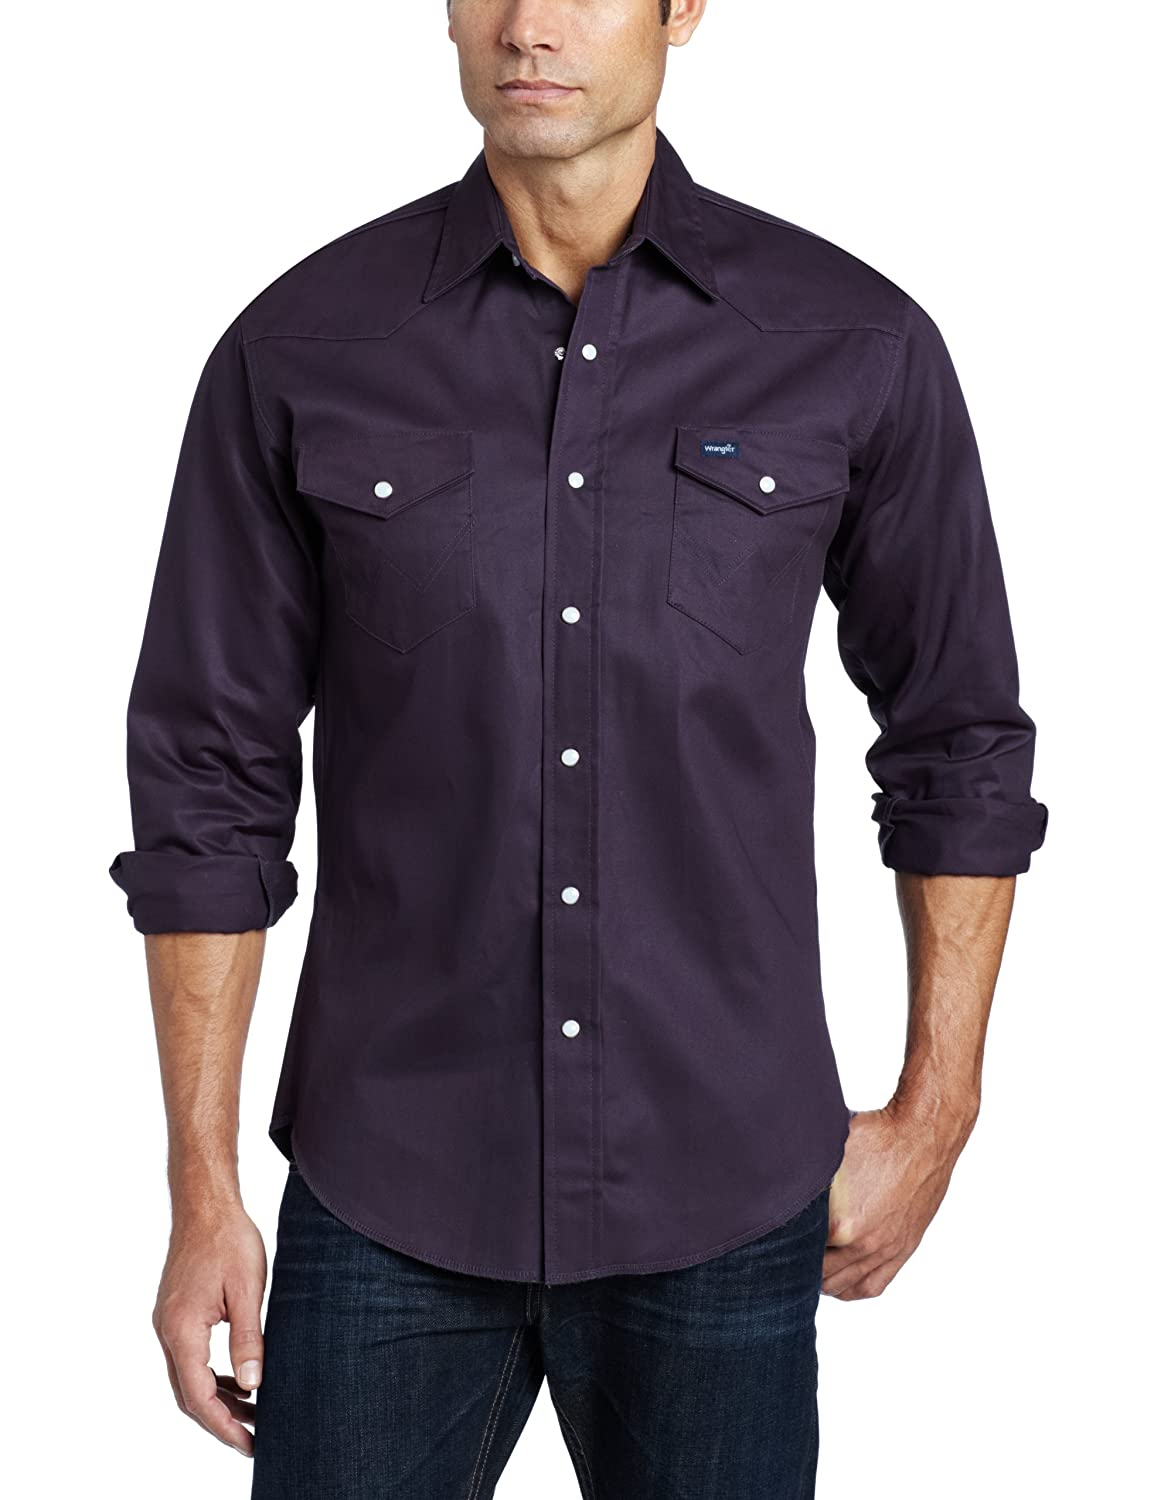 a40ae989 Wrangler Men's Authentic Cowboy Cut Work Western Long-Sleeve Shirt at  Amazon Men's Clothing store: Athletic Shirts